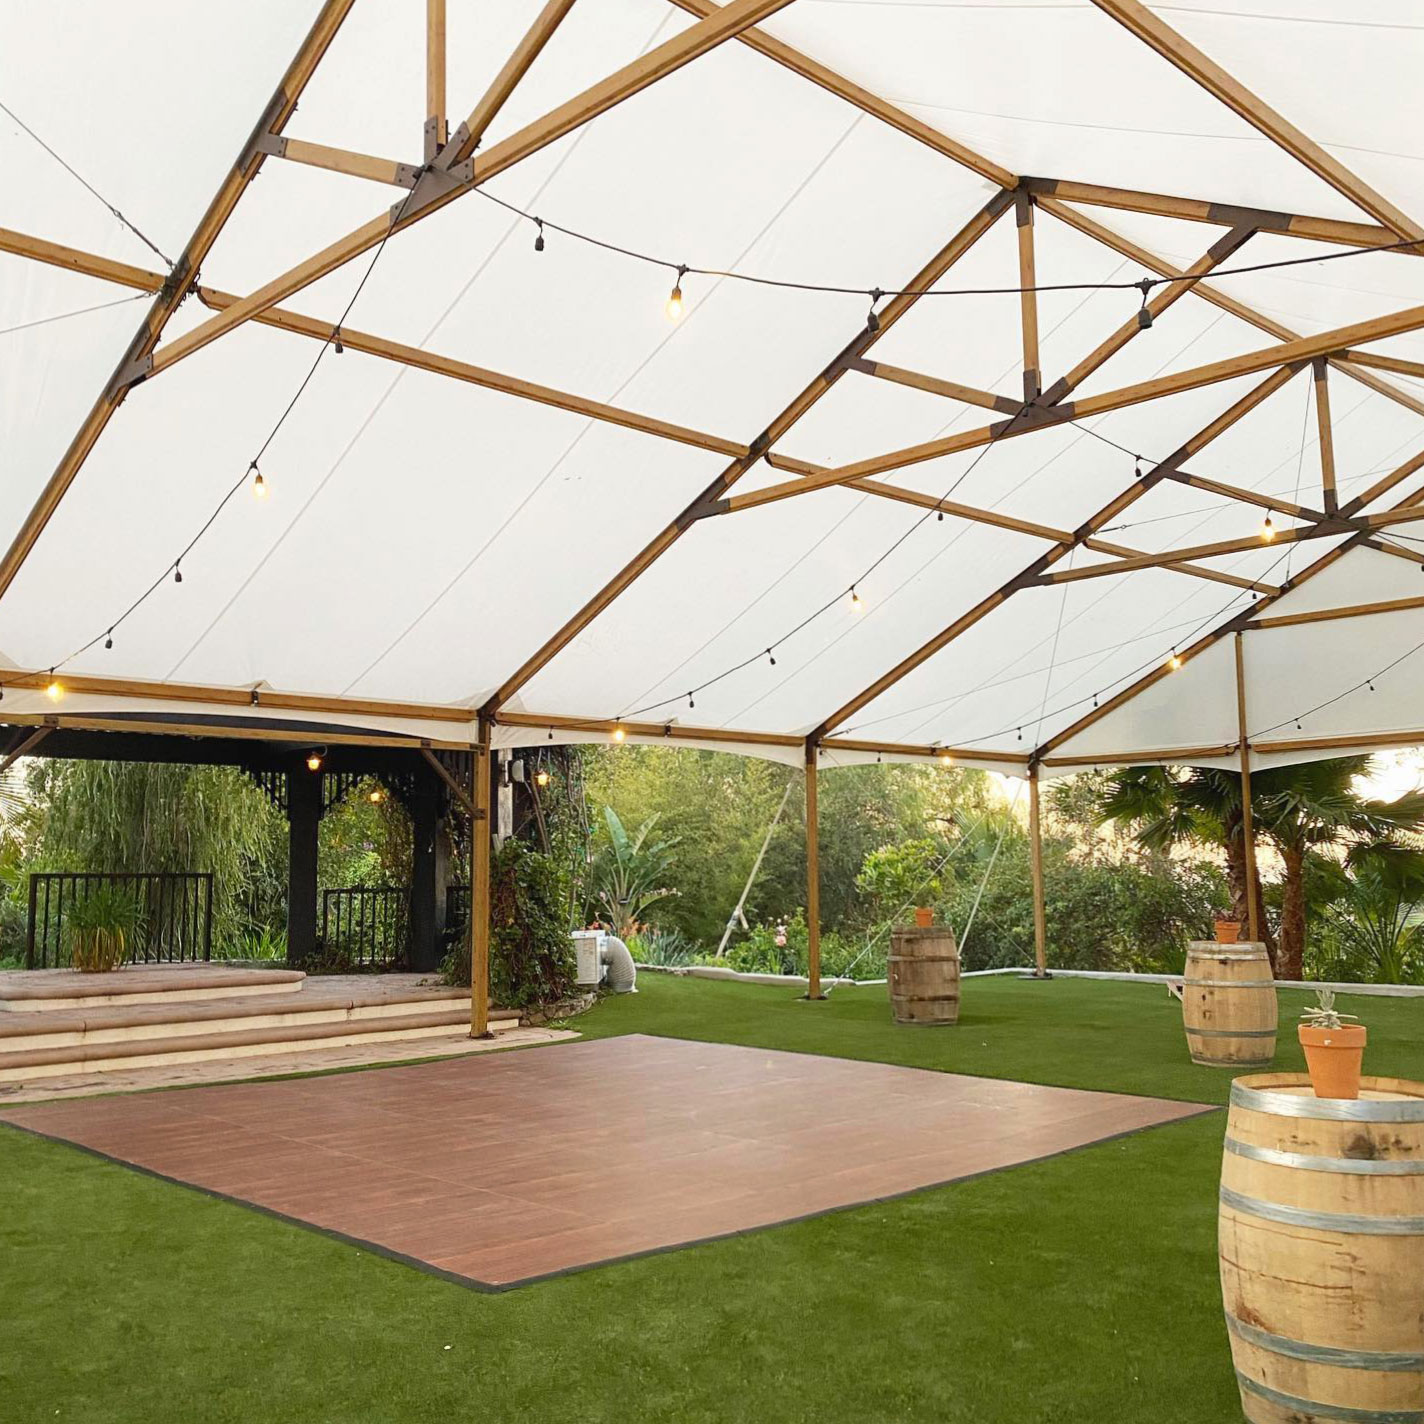 Dark Maple Plus dance floor under a tent, on grass